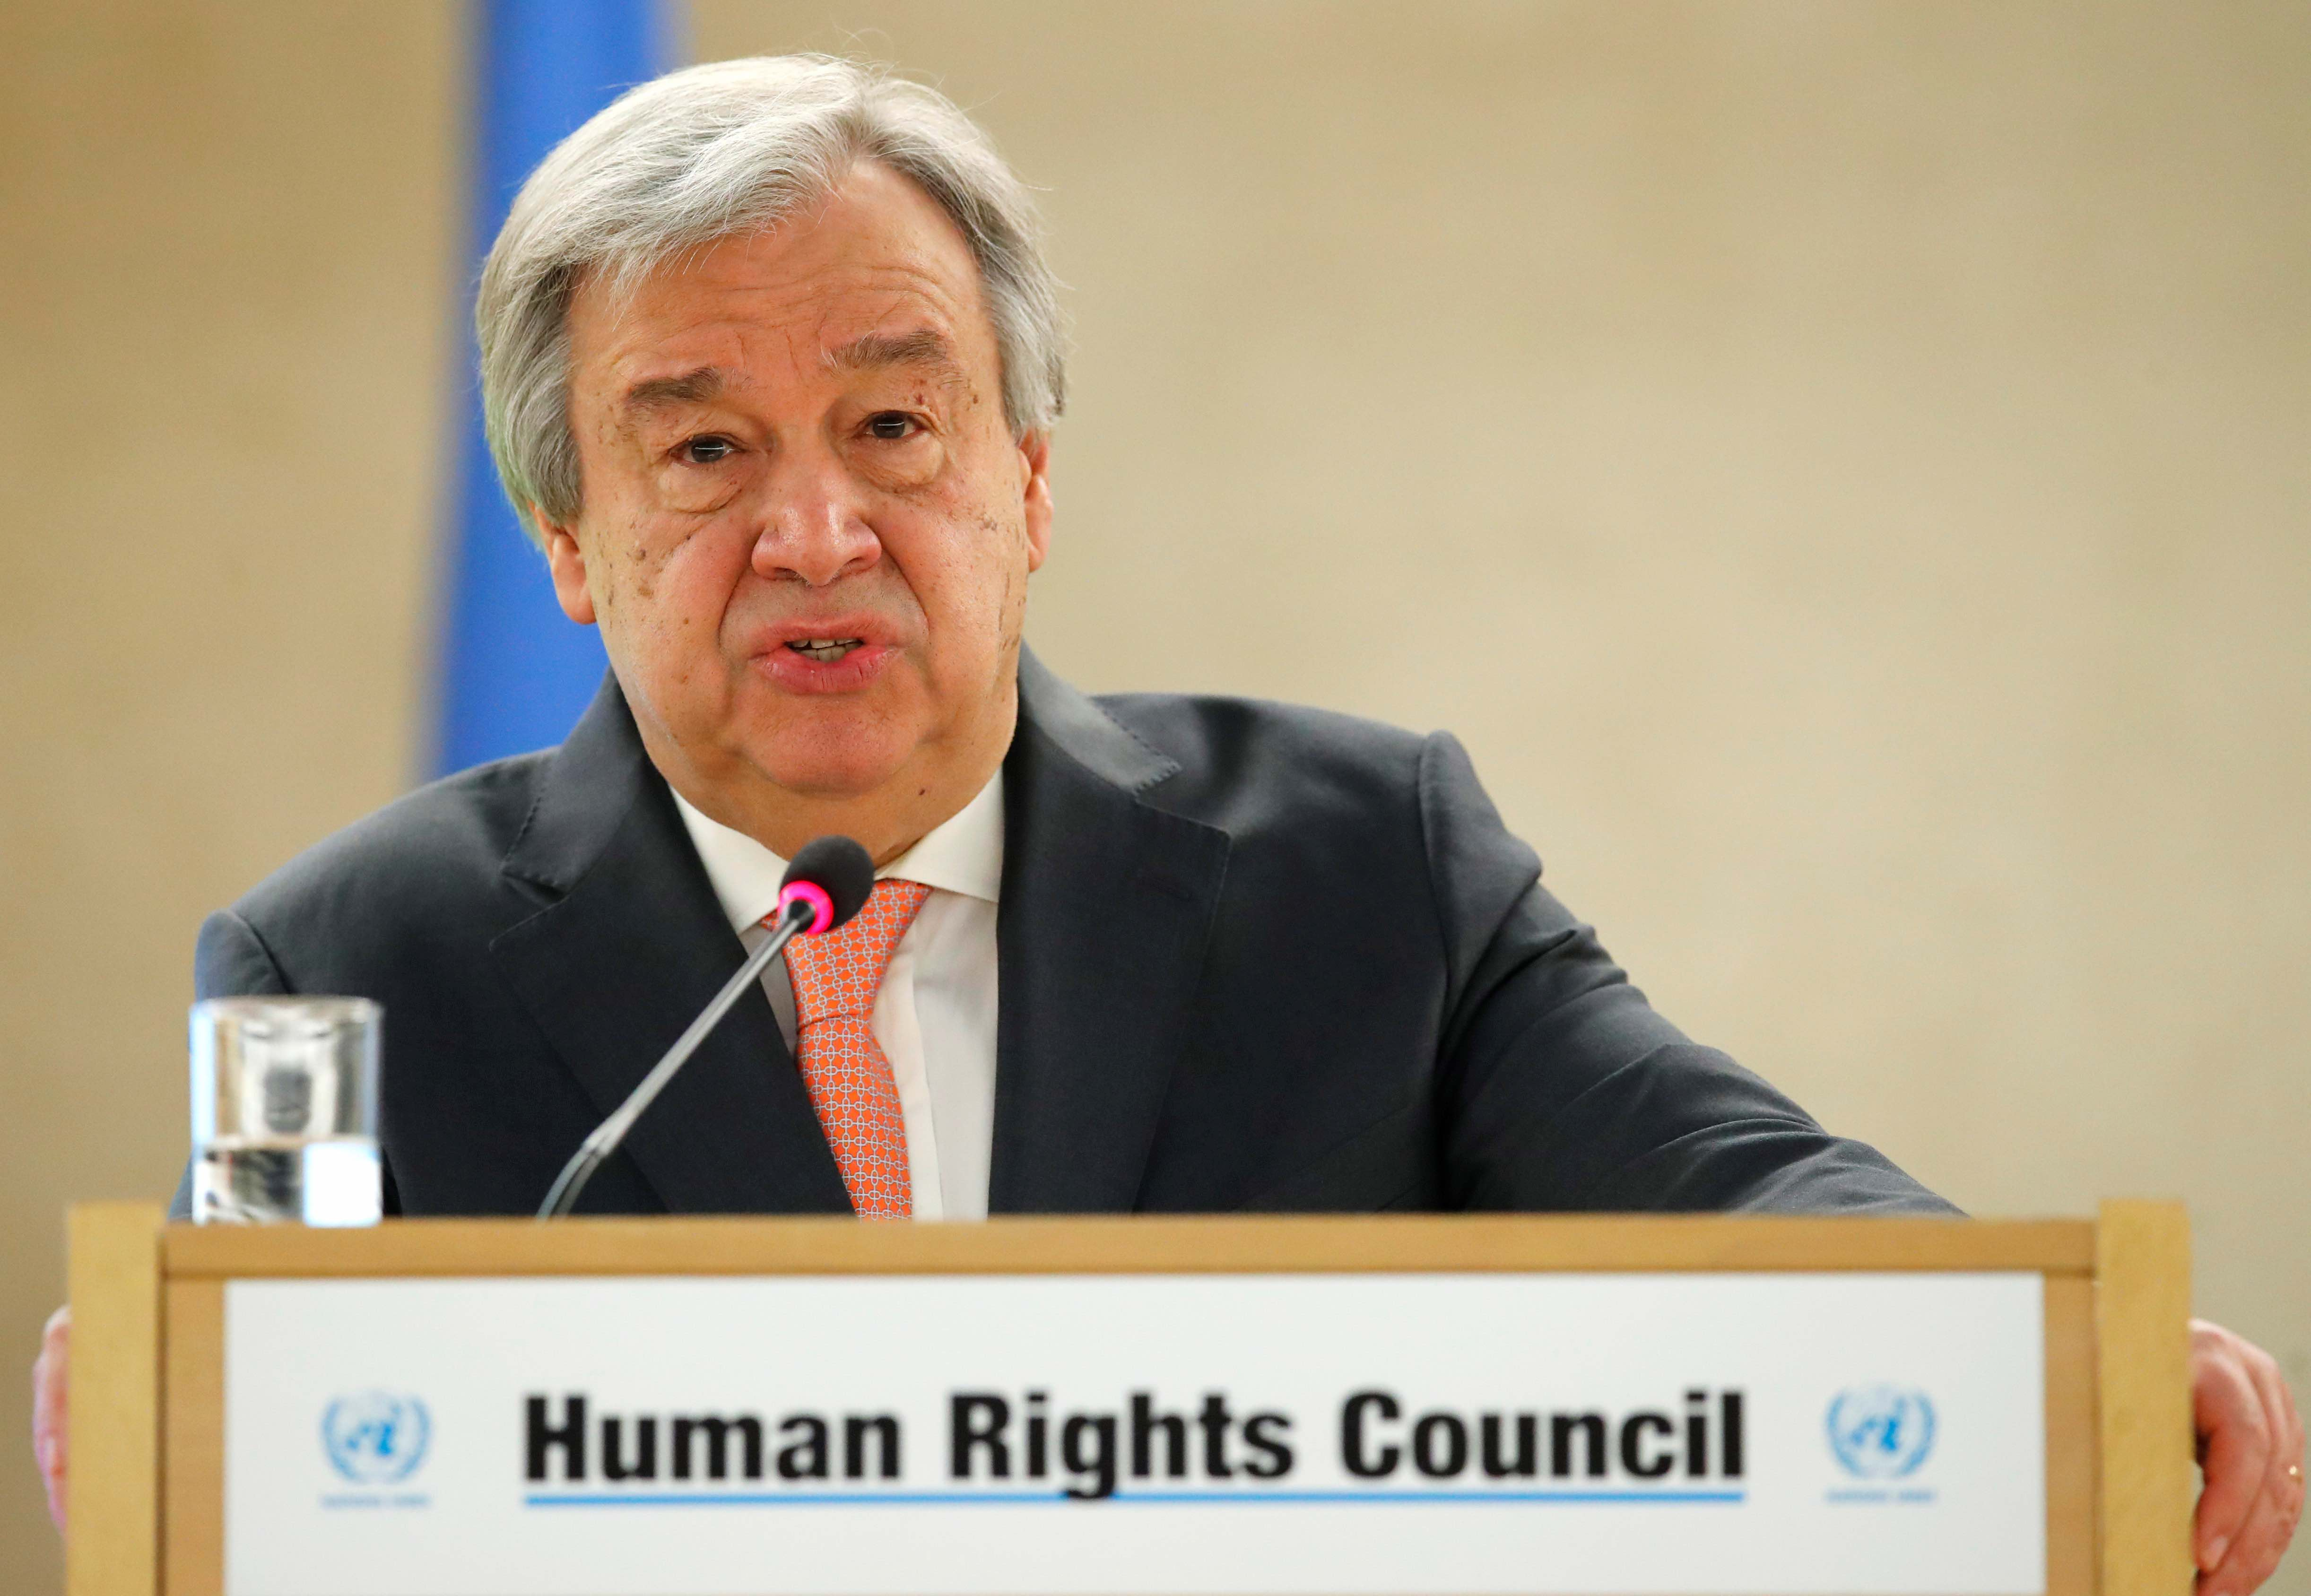 United Nations  chief Antonio Guterres could discuss Kashmir issue at UNGA: Spokesperson